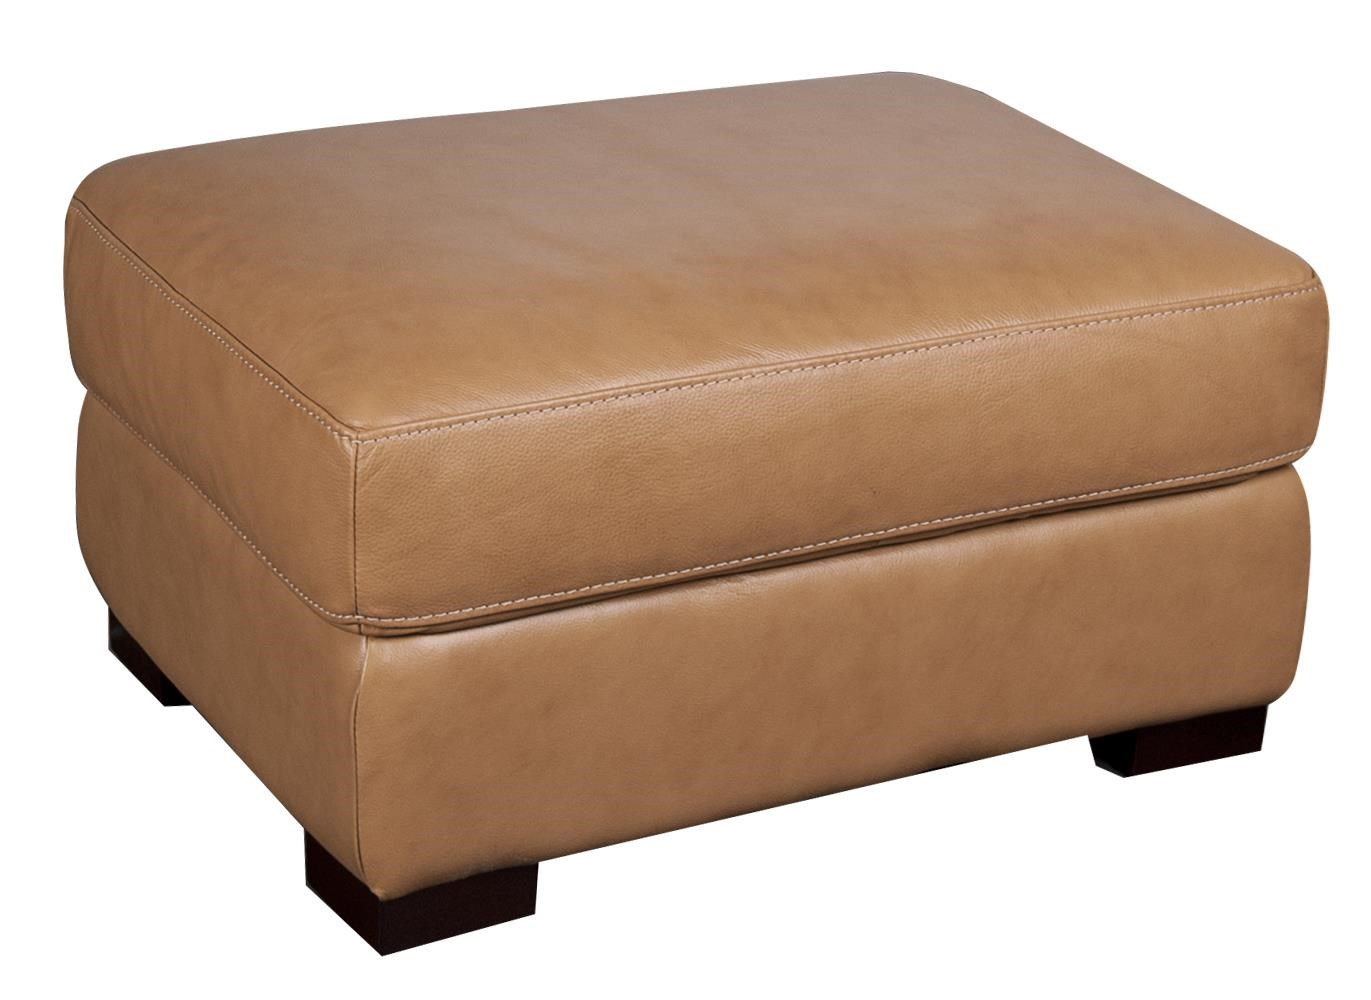 Morris Home Furnishings Titus Titus 100% Leather Ottoman - Item Number: 556660179